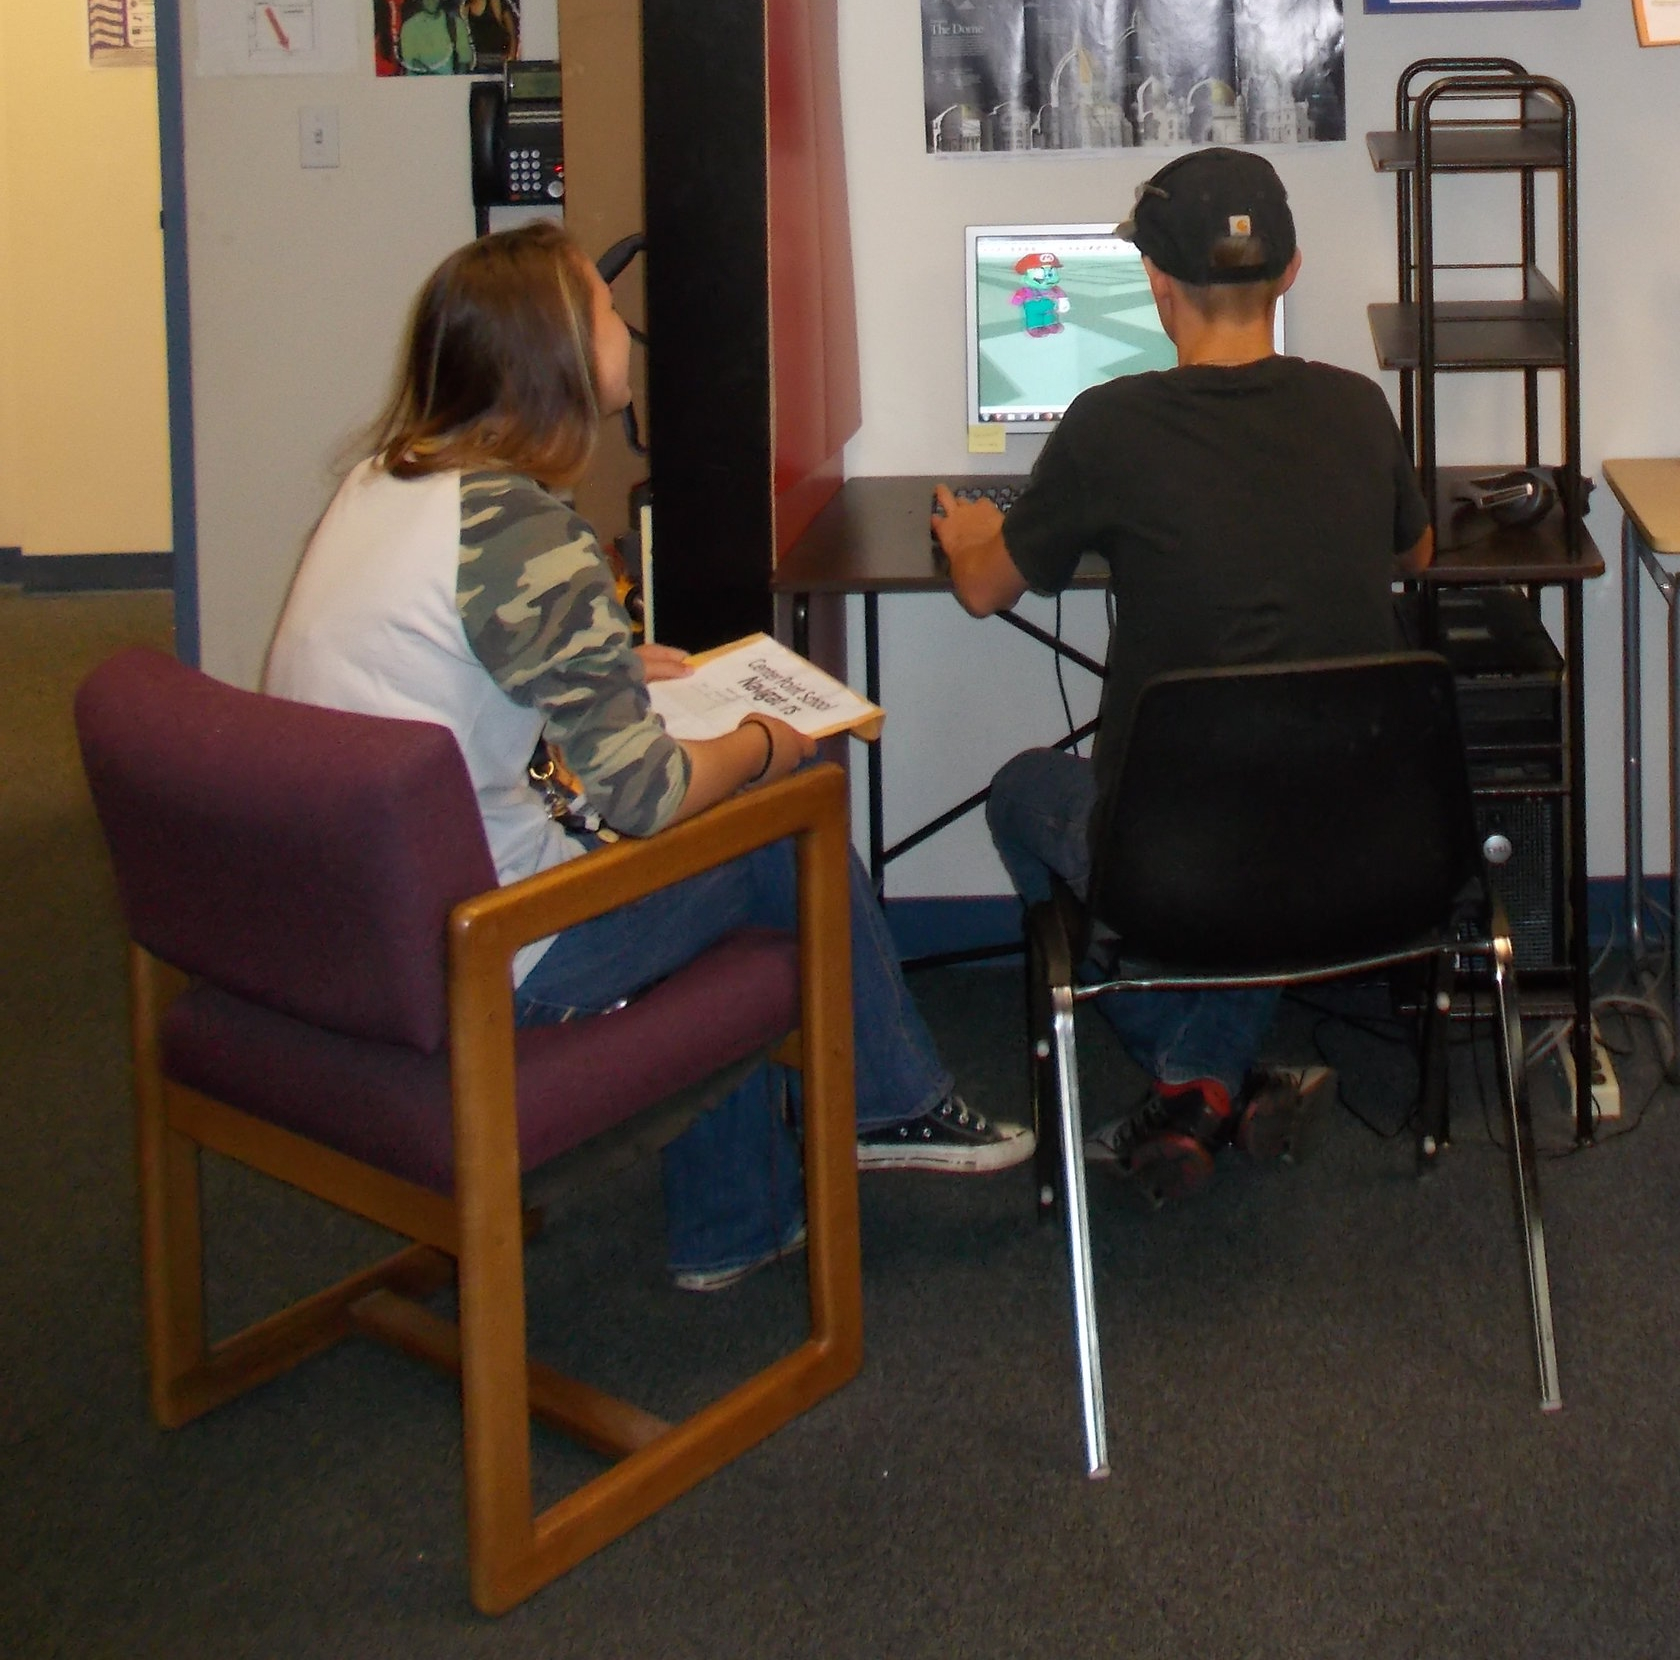 A Center Point student demonstrates his computer skills to a visitor